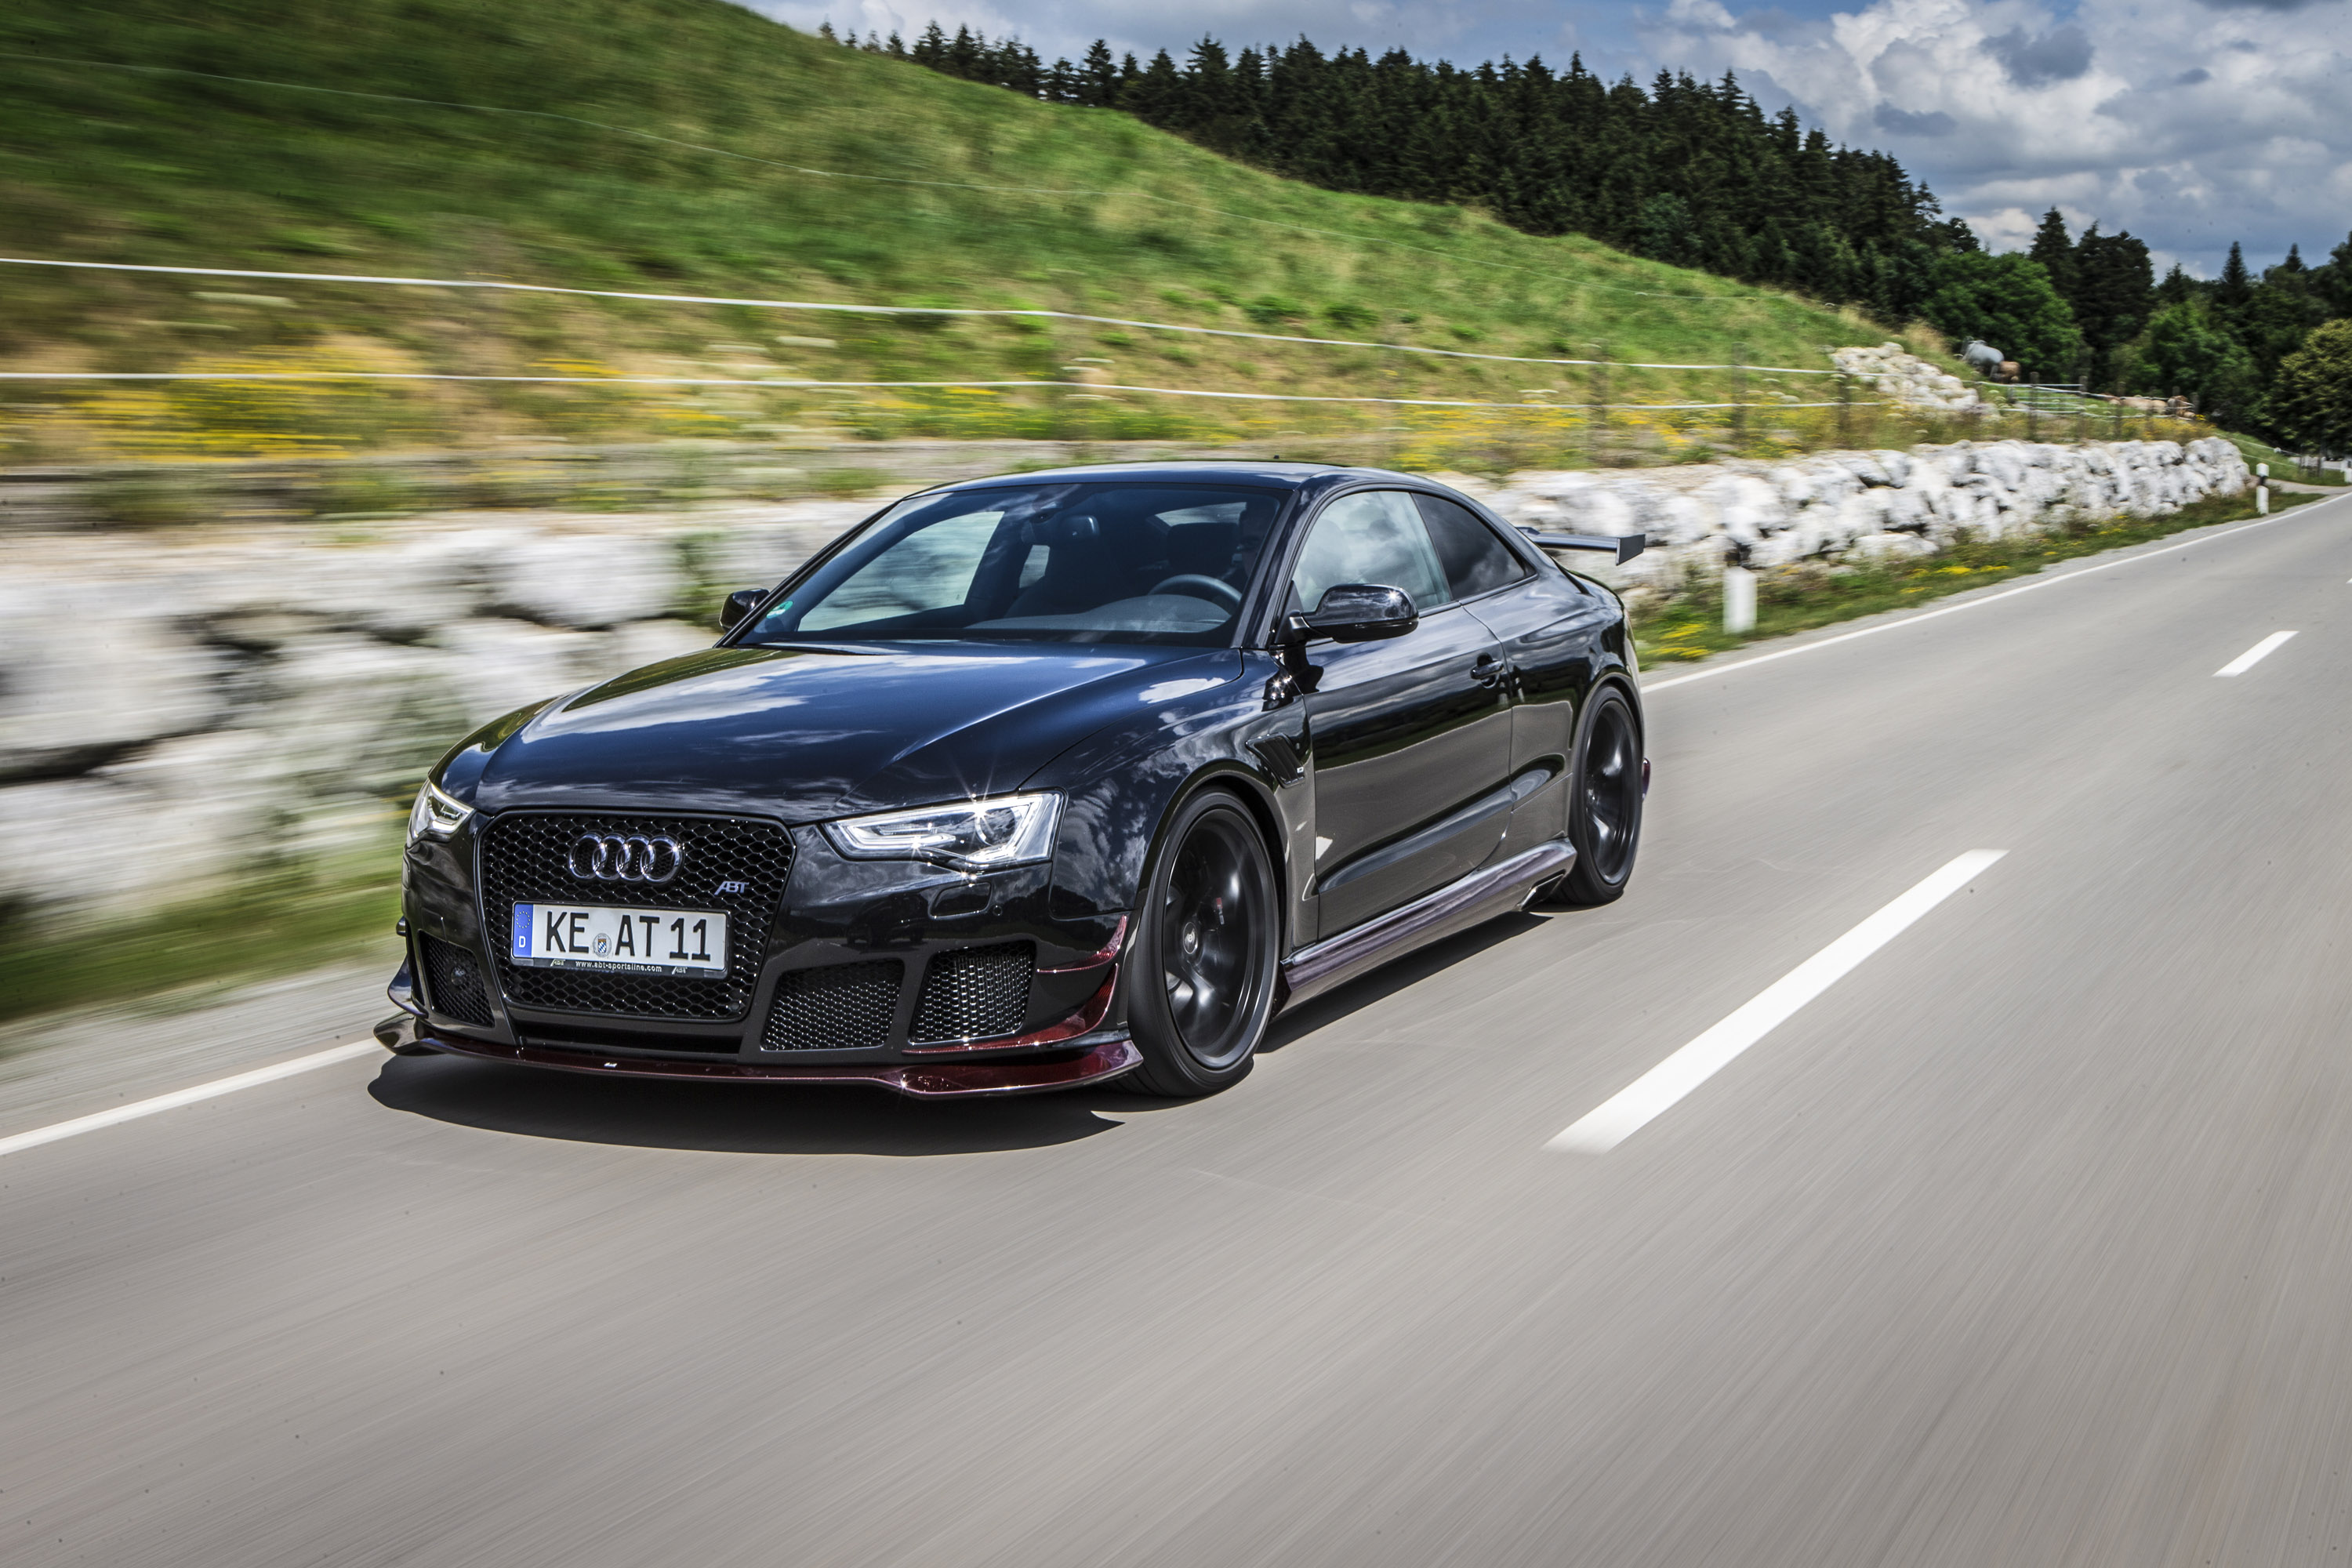 2014 Abt Audi Rs5 R Is Capable Of Reaching Top Speed Of